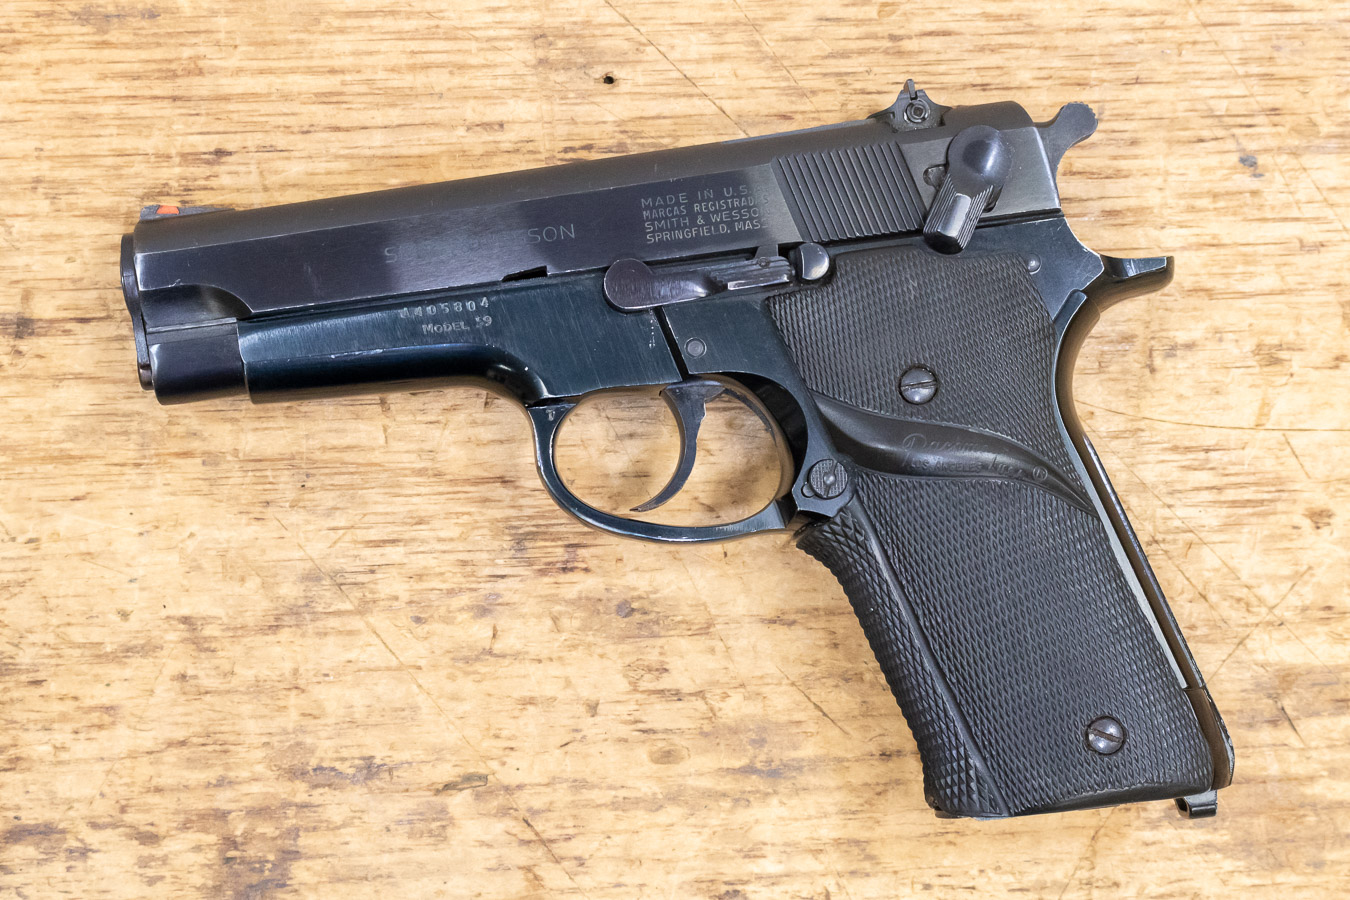 SMITH AND WESSON MODEL 59 9MM 14-ROUND USED TRADE-IN PISTOL